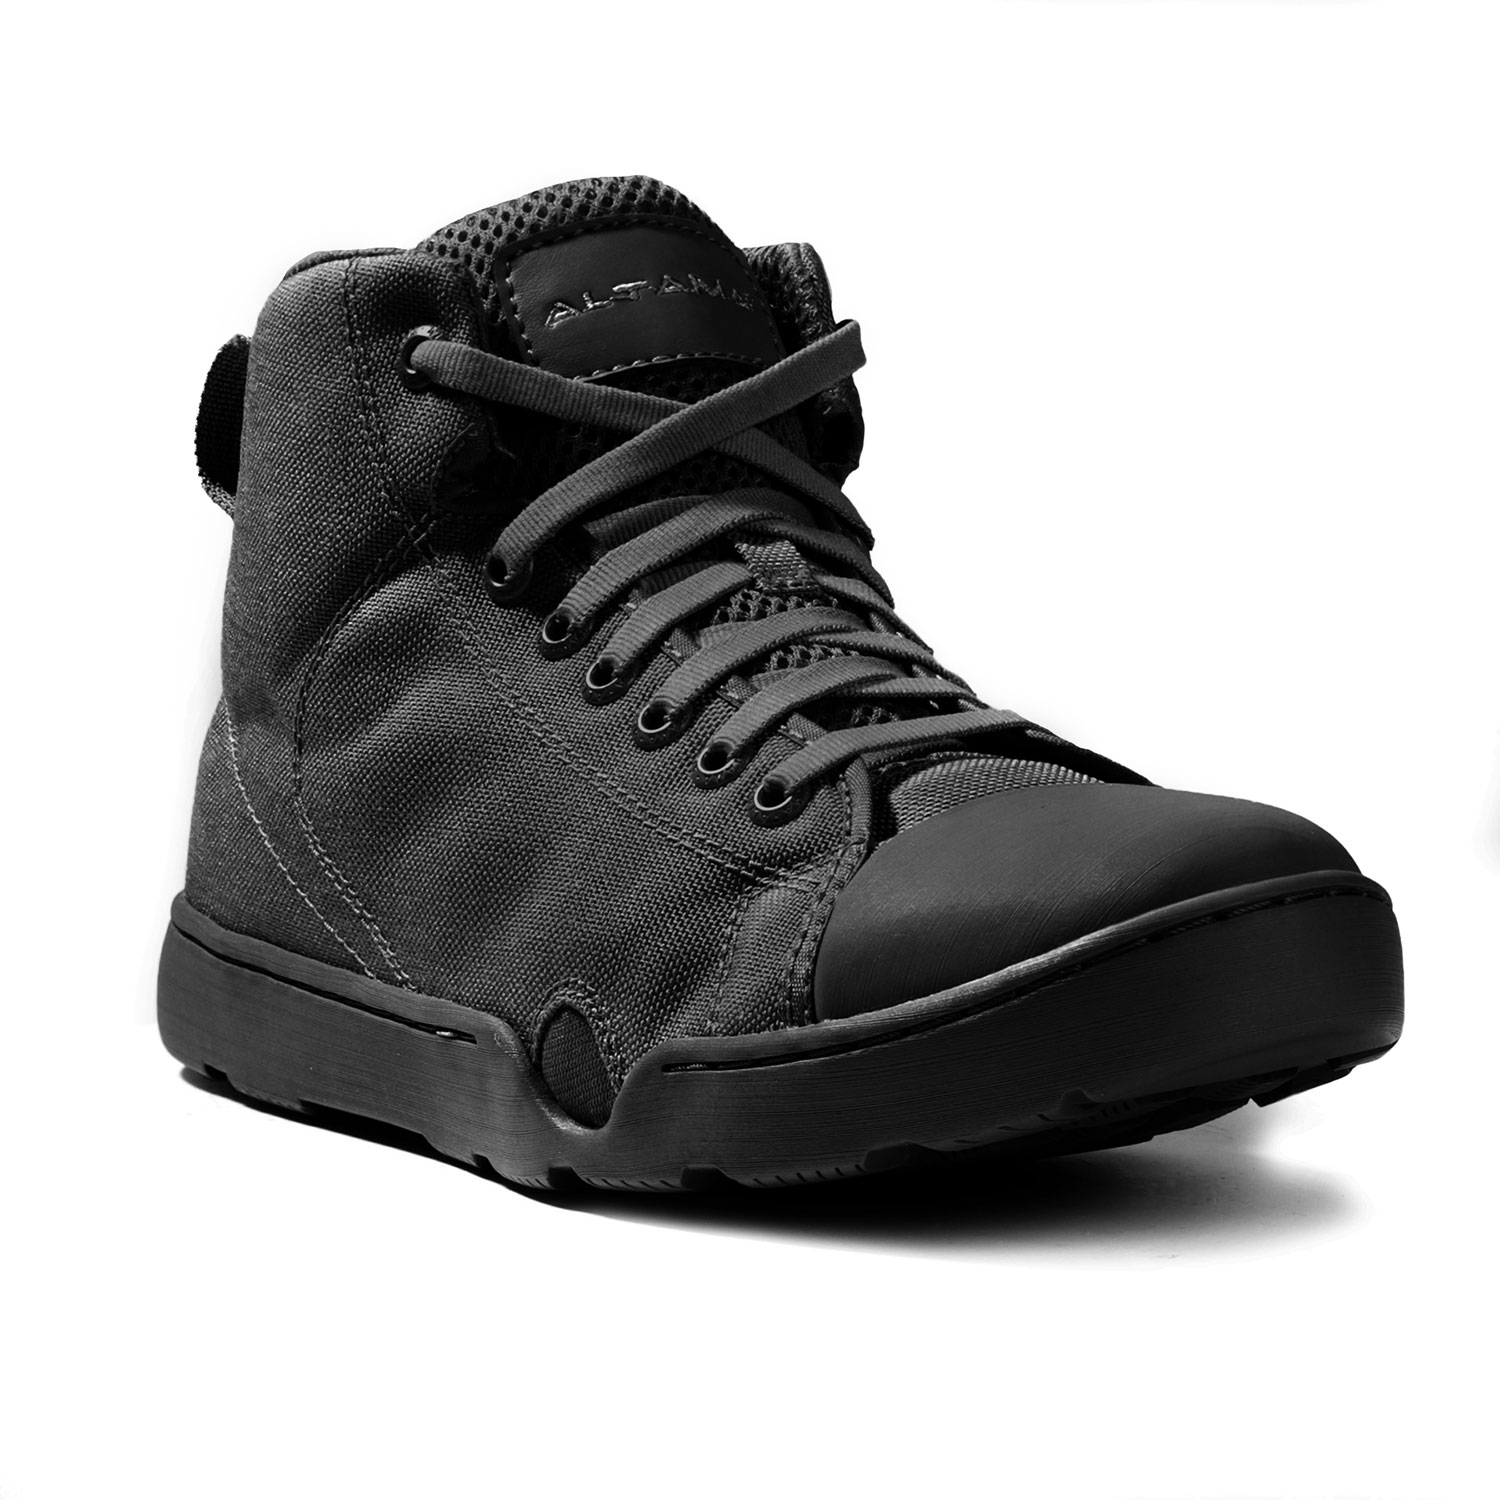 Altama Maritime Assault Mid Boot